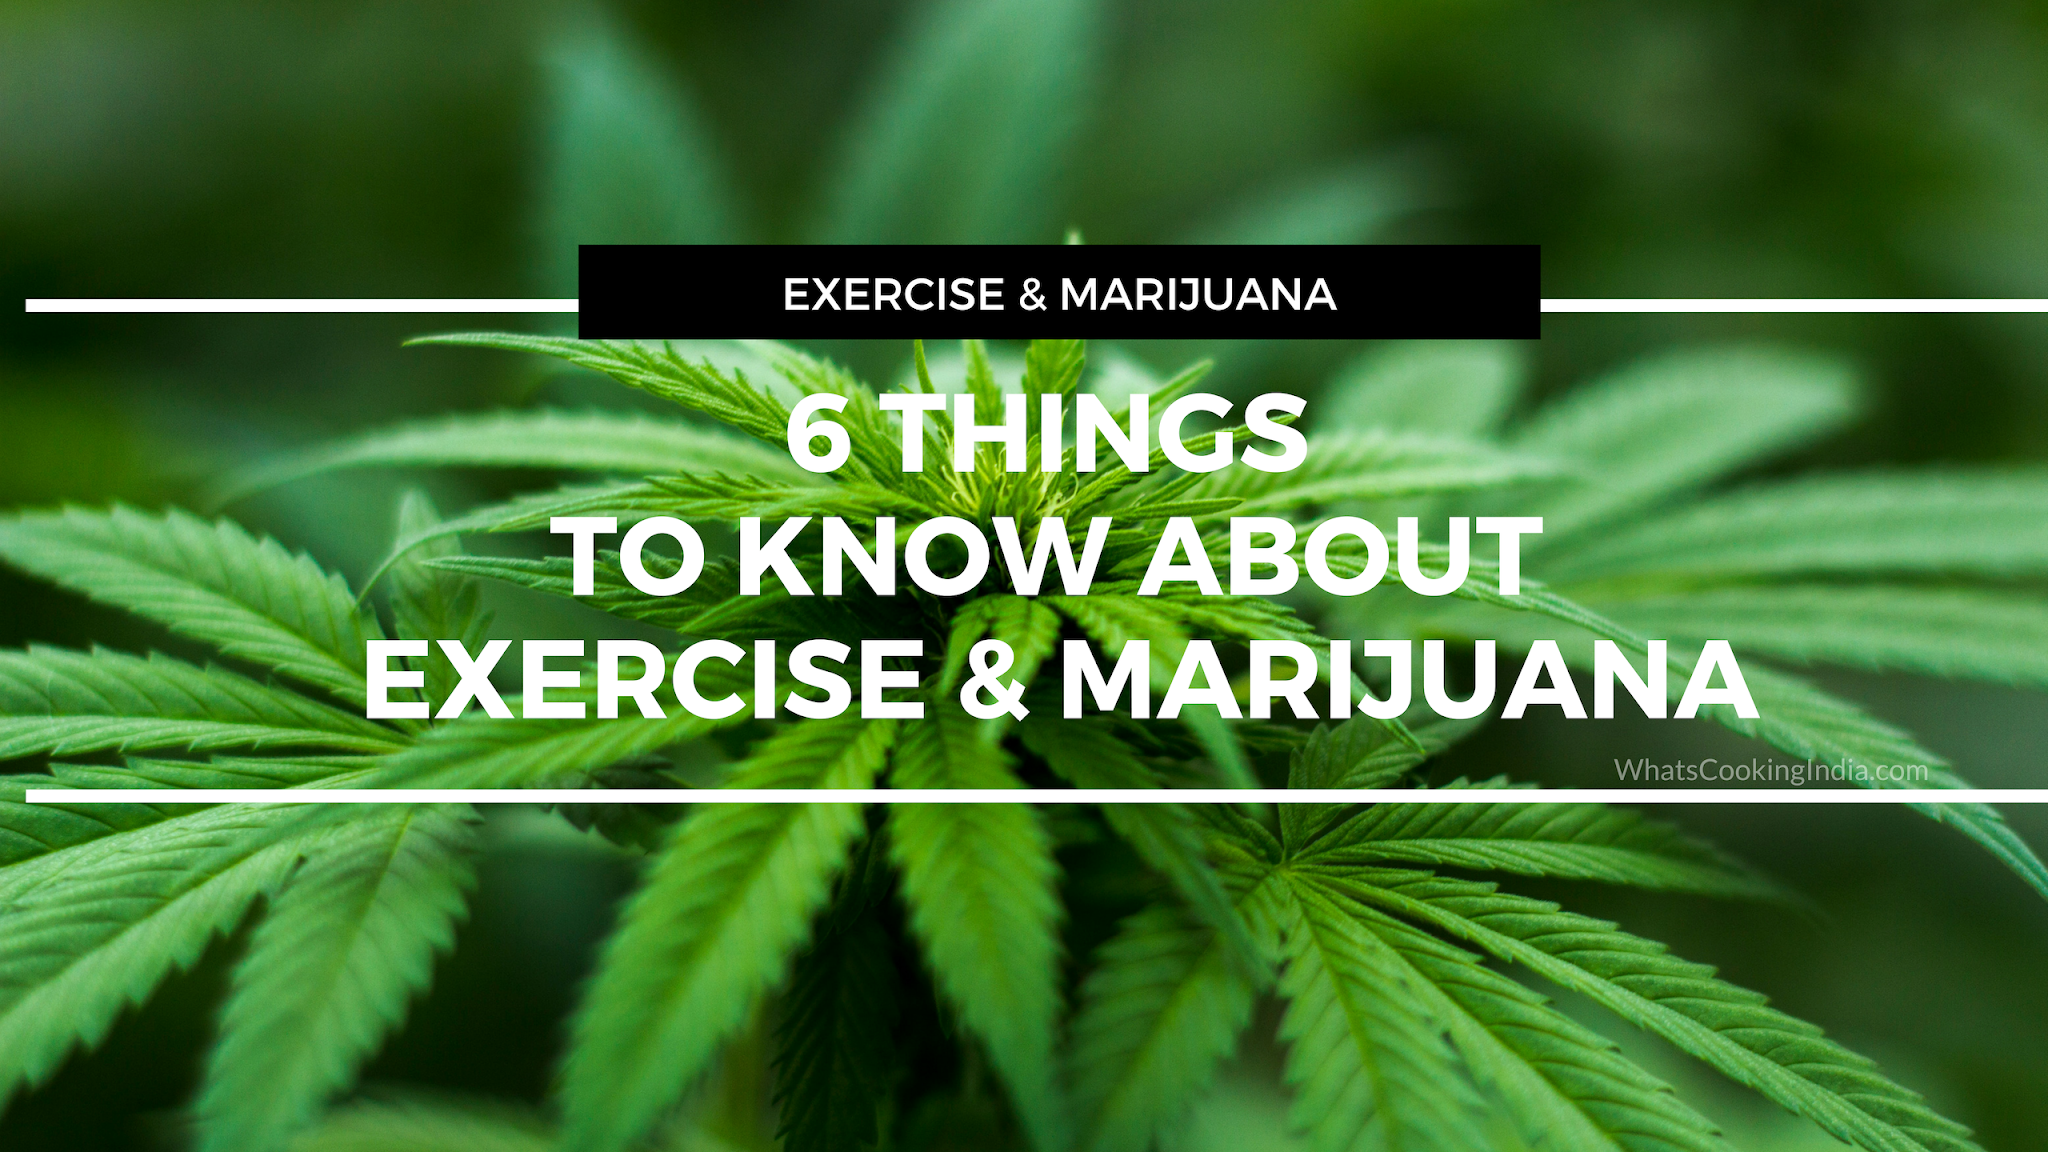 6 Things to know about Exercise and marijuana